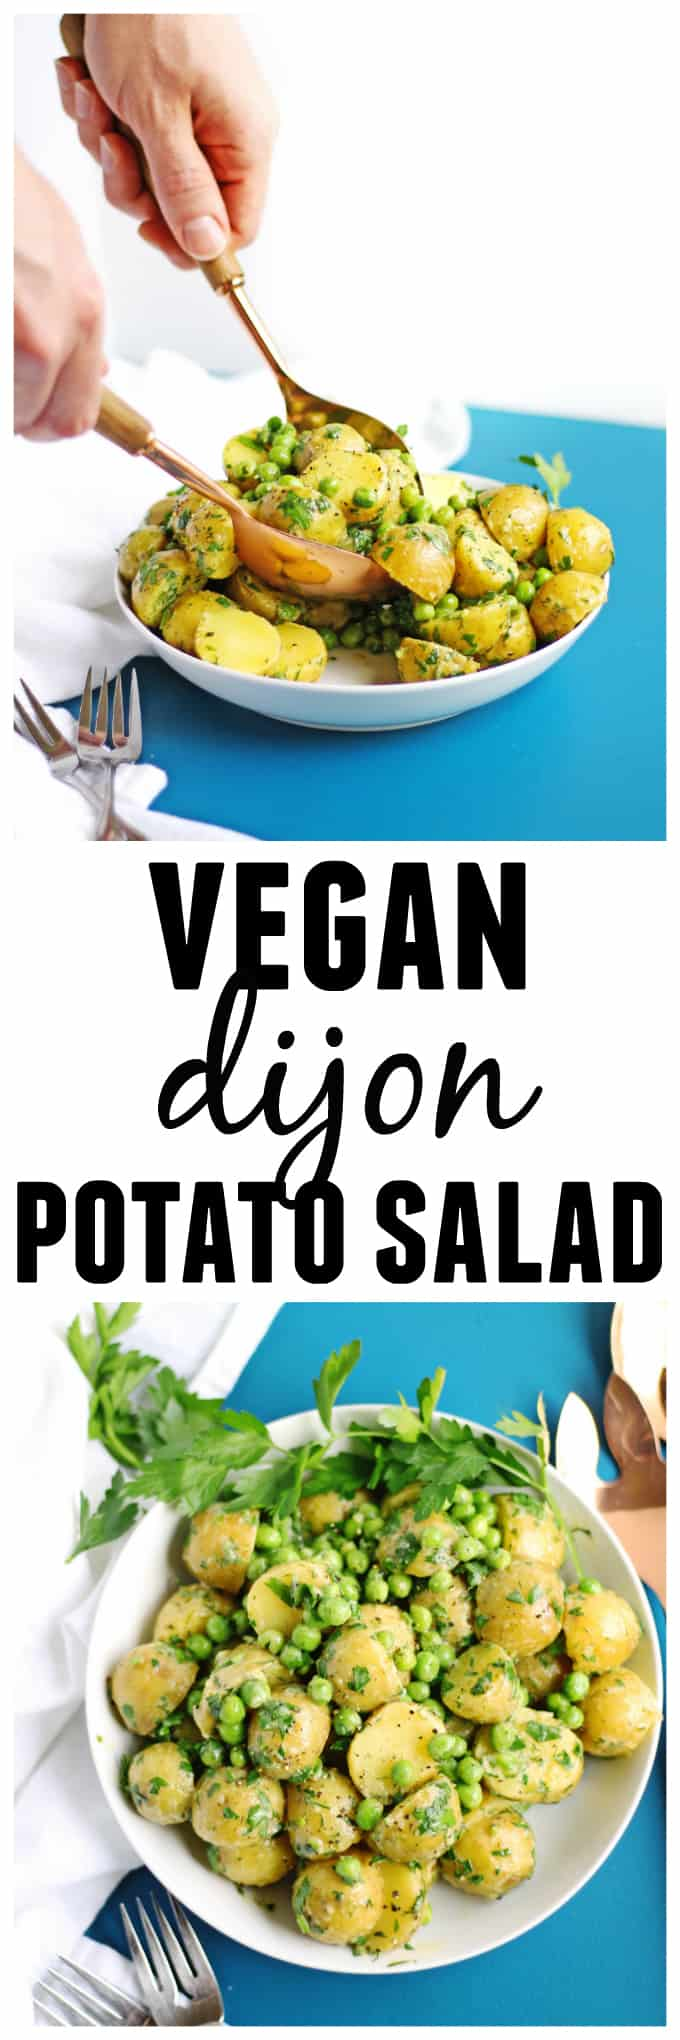 Vegan dijon potato salad recipe! Loaded with spring peas and herbs. Quick, easy, and perfect for your next side dish! // Rhubarbarians / vegan side / vegan bbq / vegan barbecue / summer side dish / spring side dish